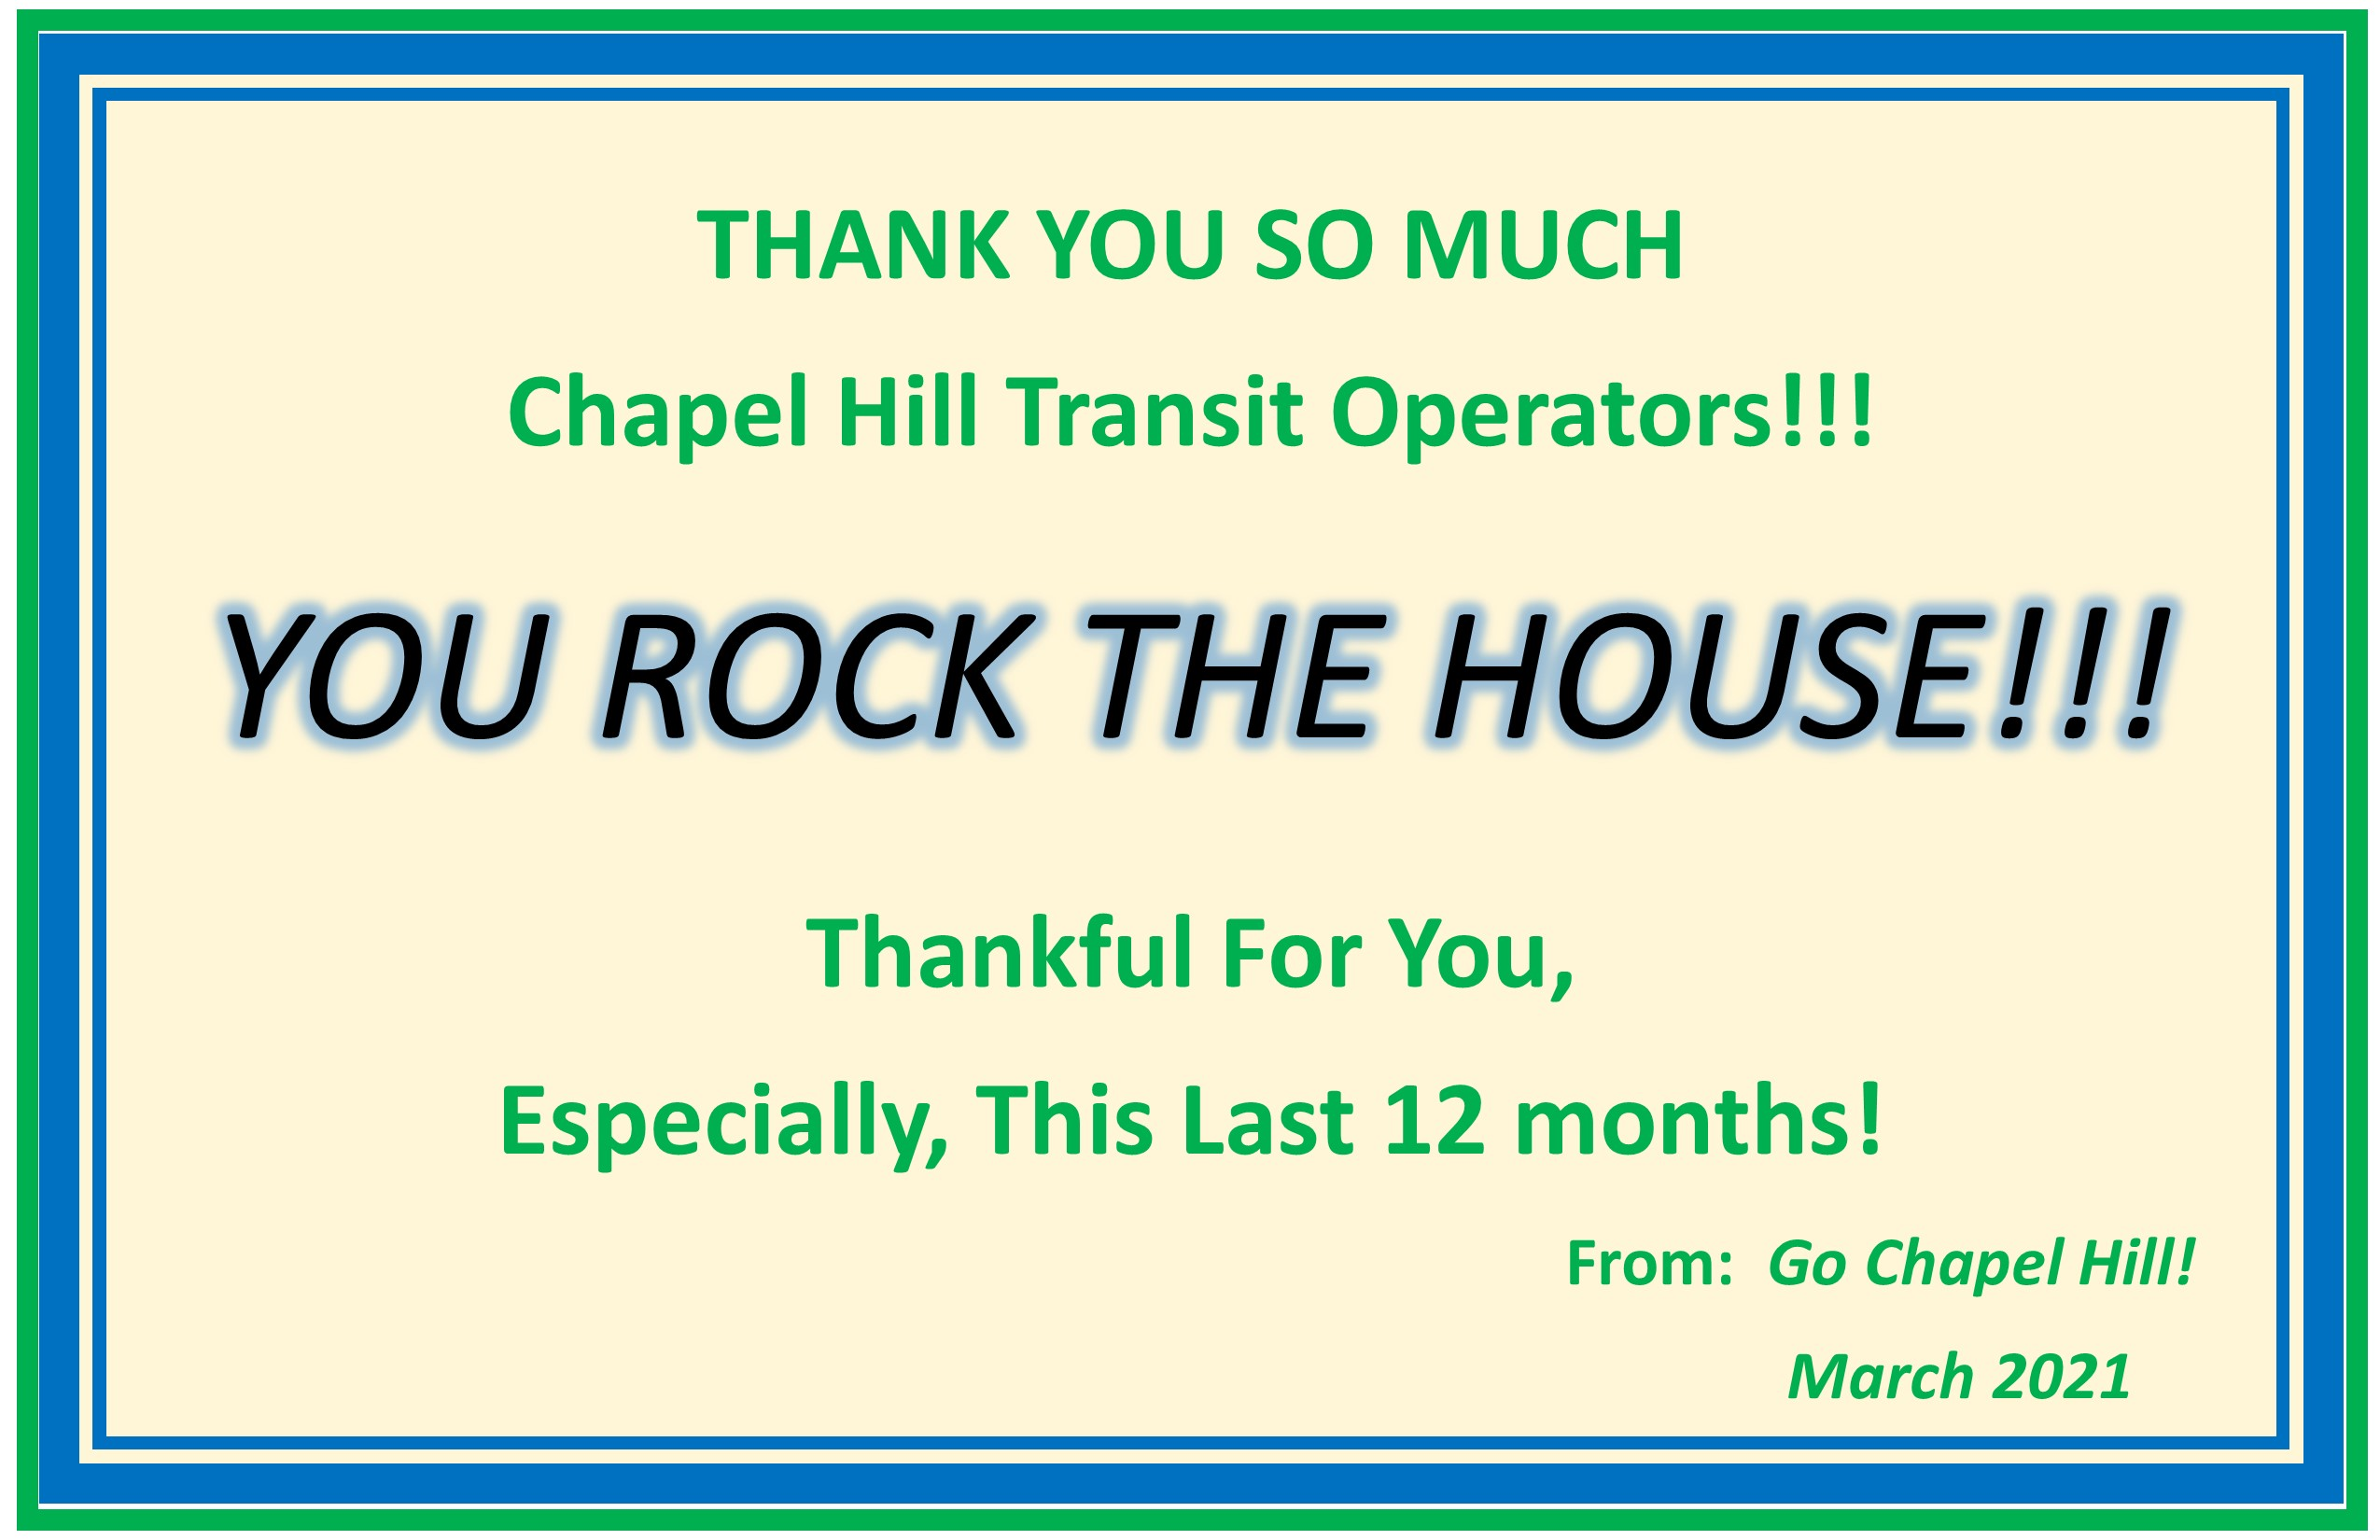 Transit Operators Thank You Event at CHT